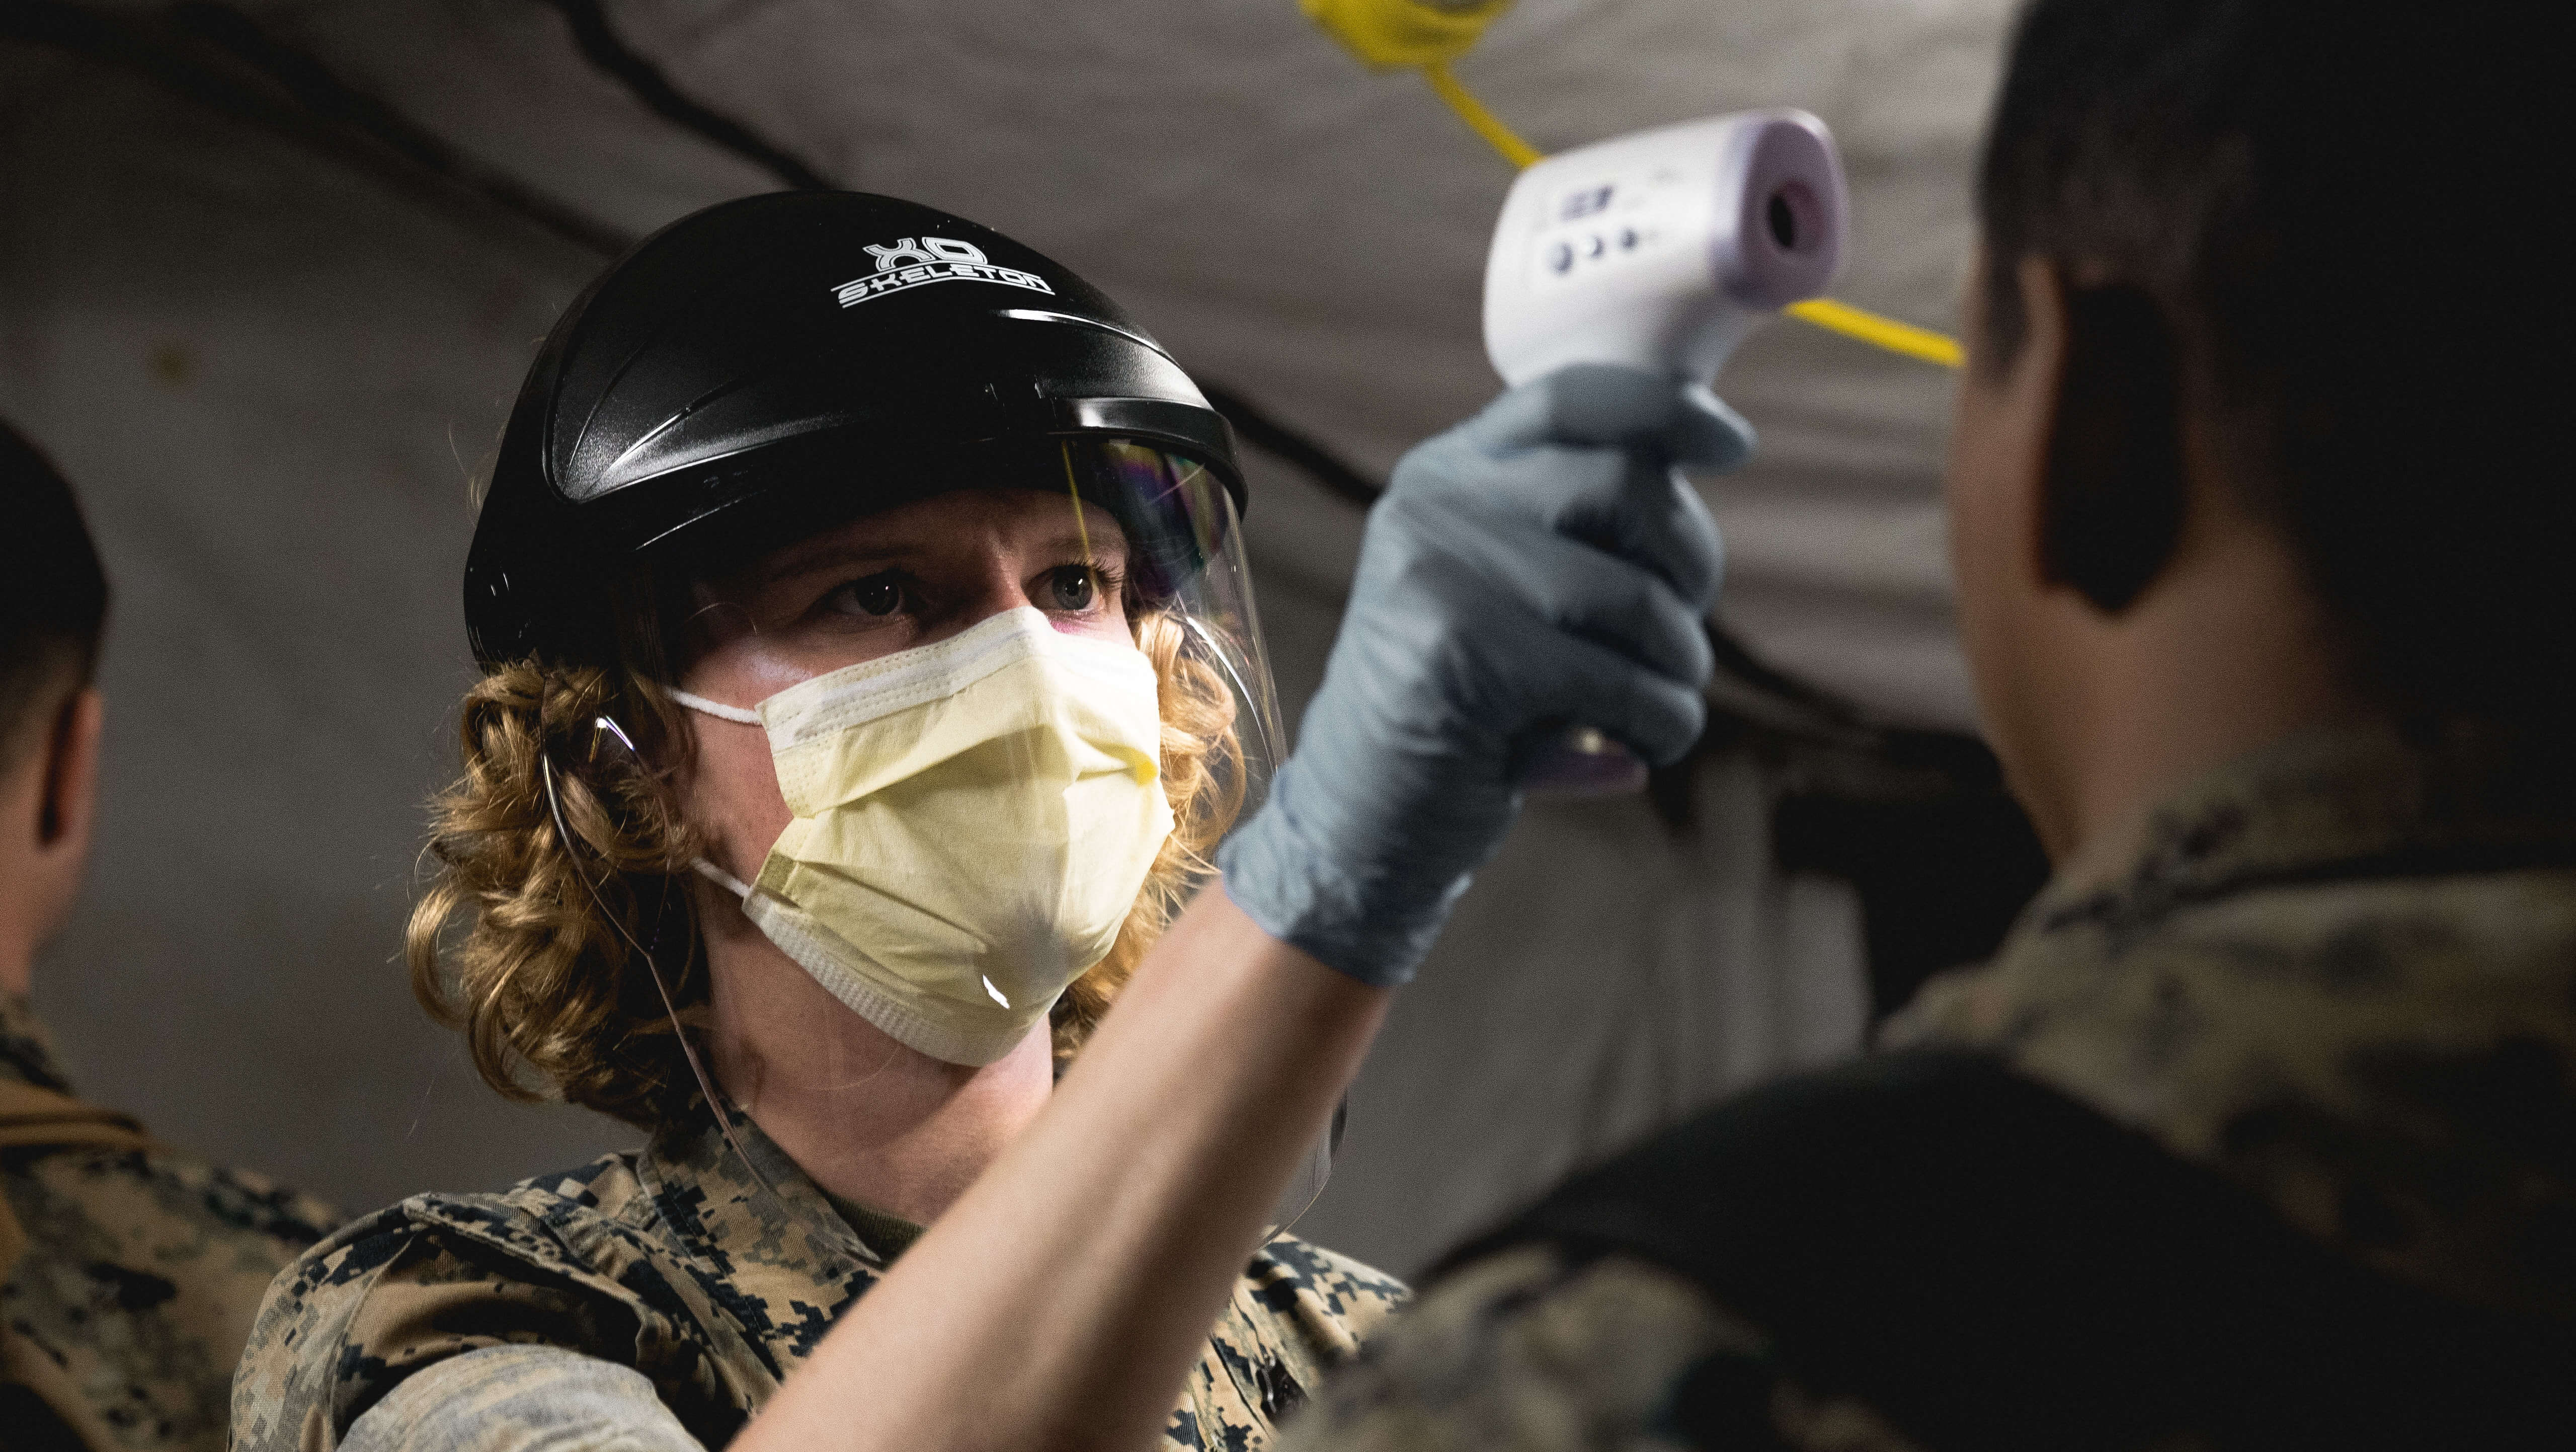 A Hospital Corpsman pre-screens Marines for the coronavirus disease. © Official U.S. Navy Page / Flickr